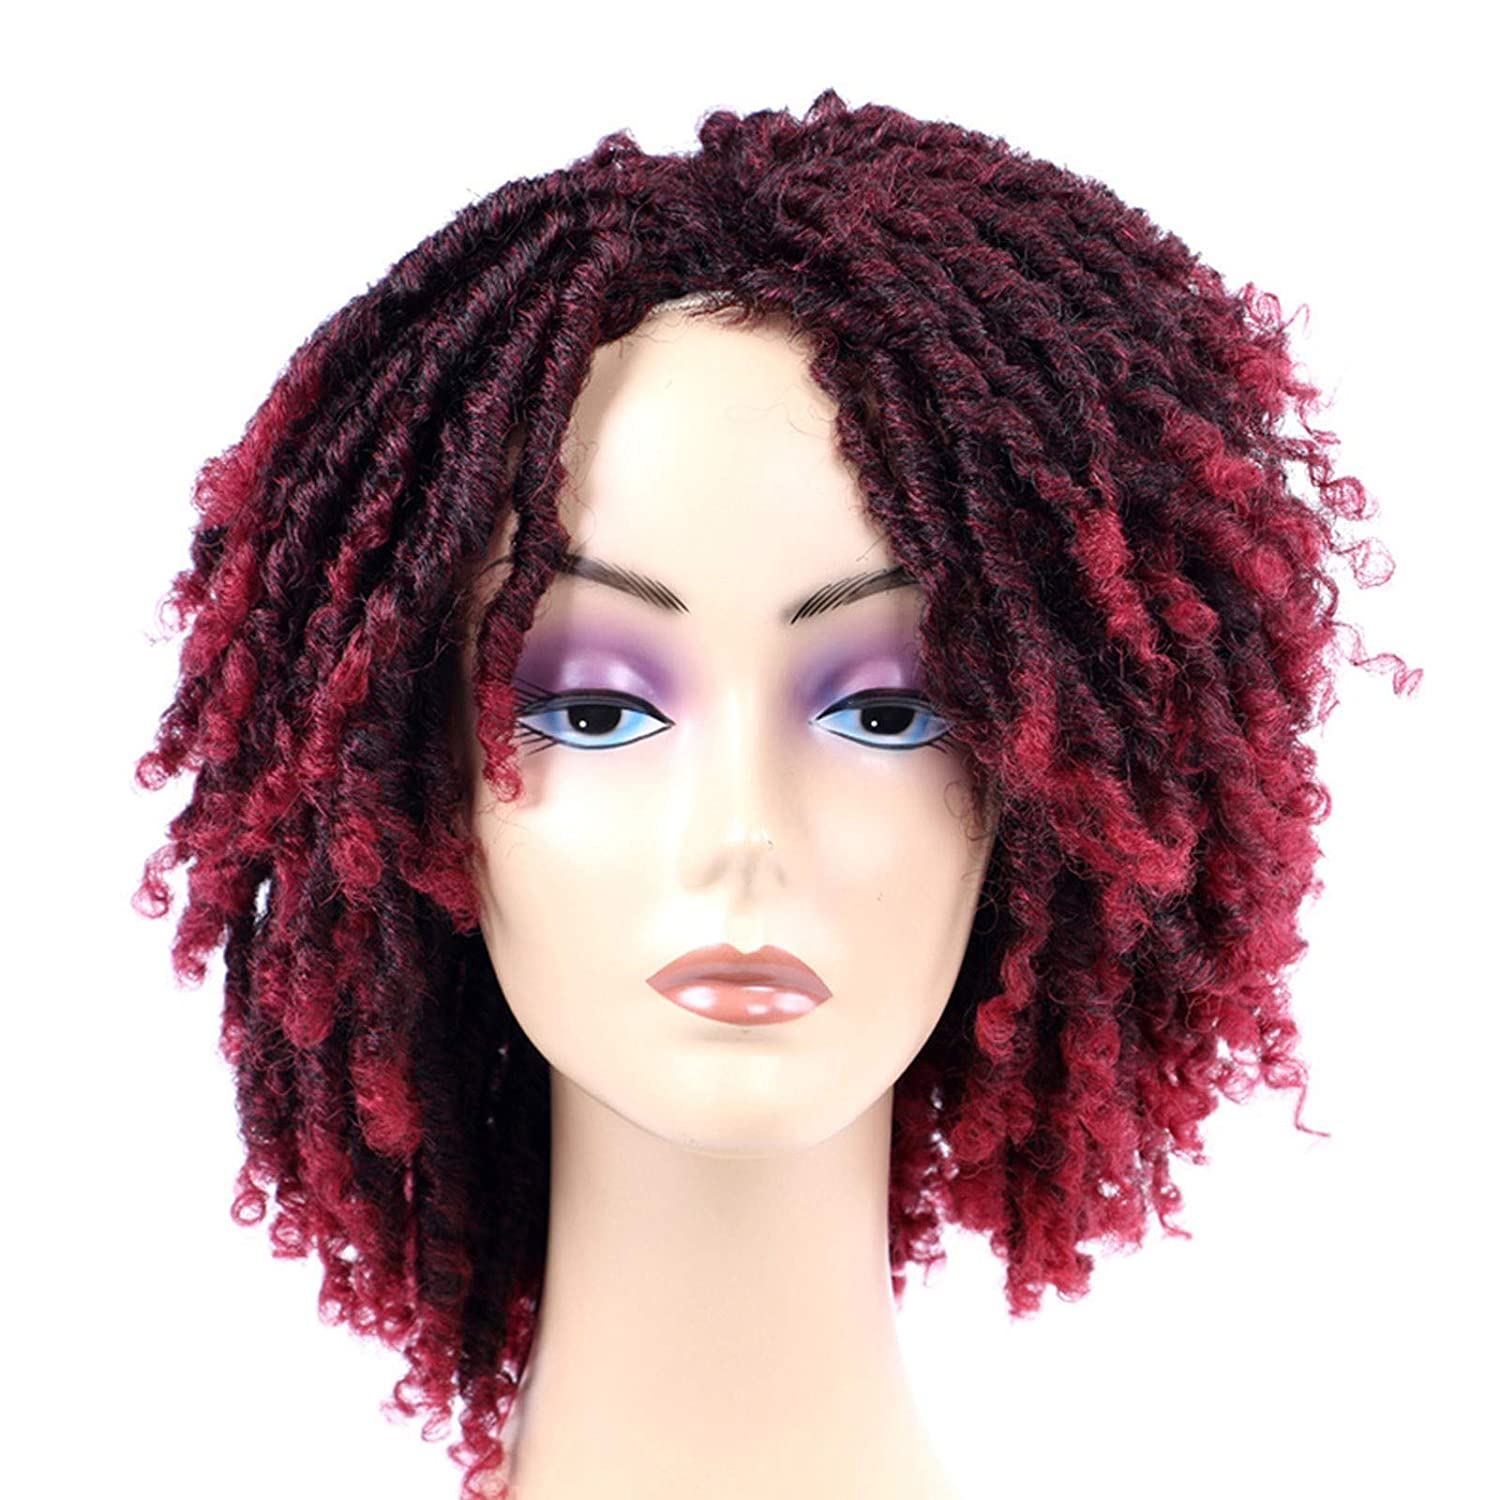 High material Black Super Special SALE held Women 14 Inch Short Twisted Curly Braided Sy Wig